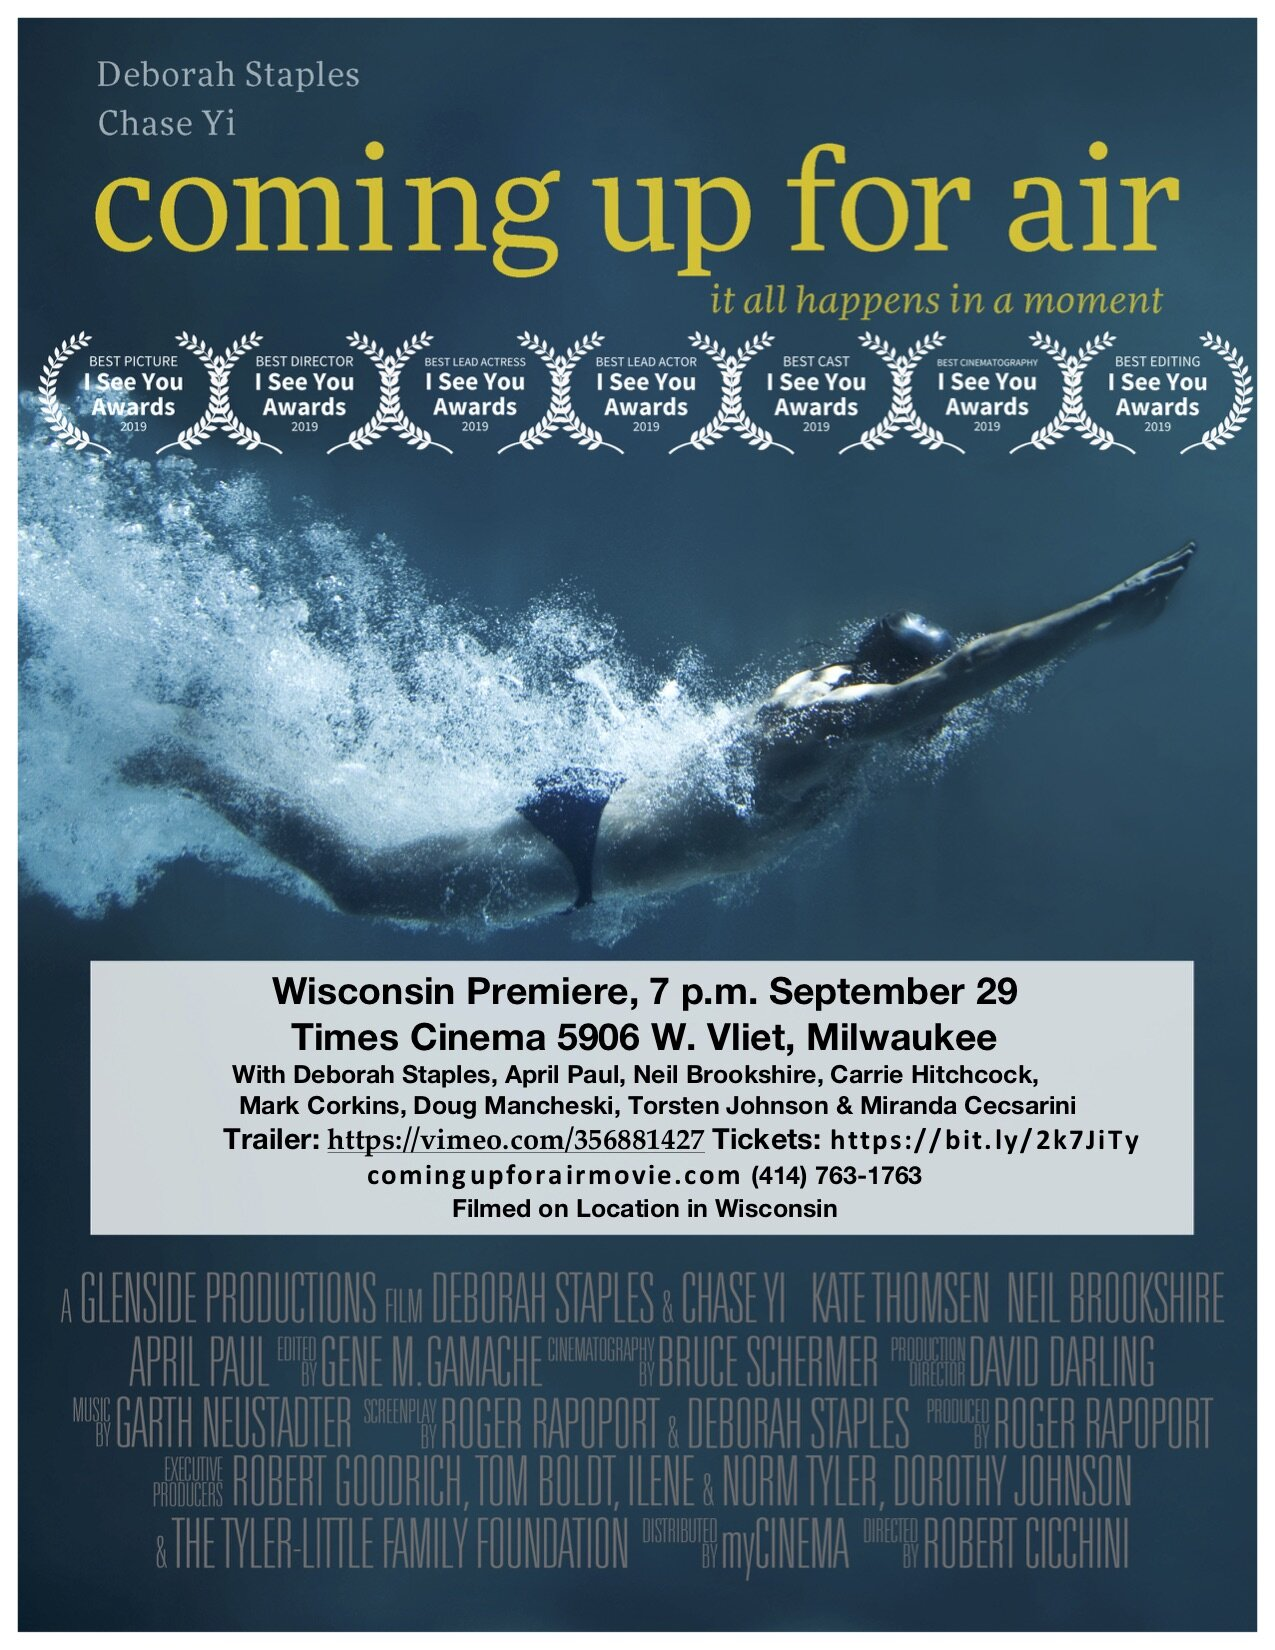 RSVP at  https://www.comingupforairmovie.com/events-1